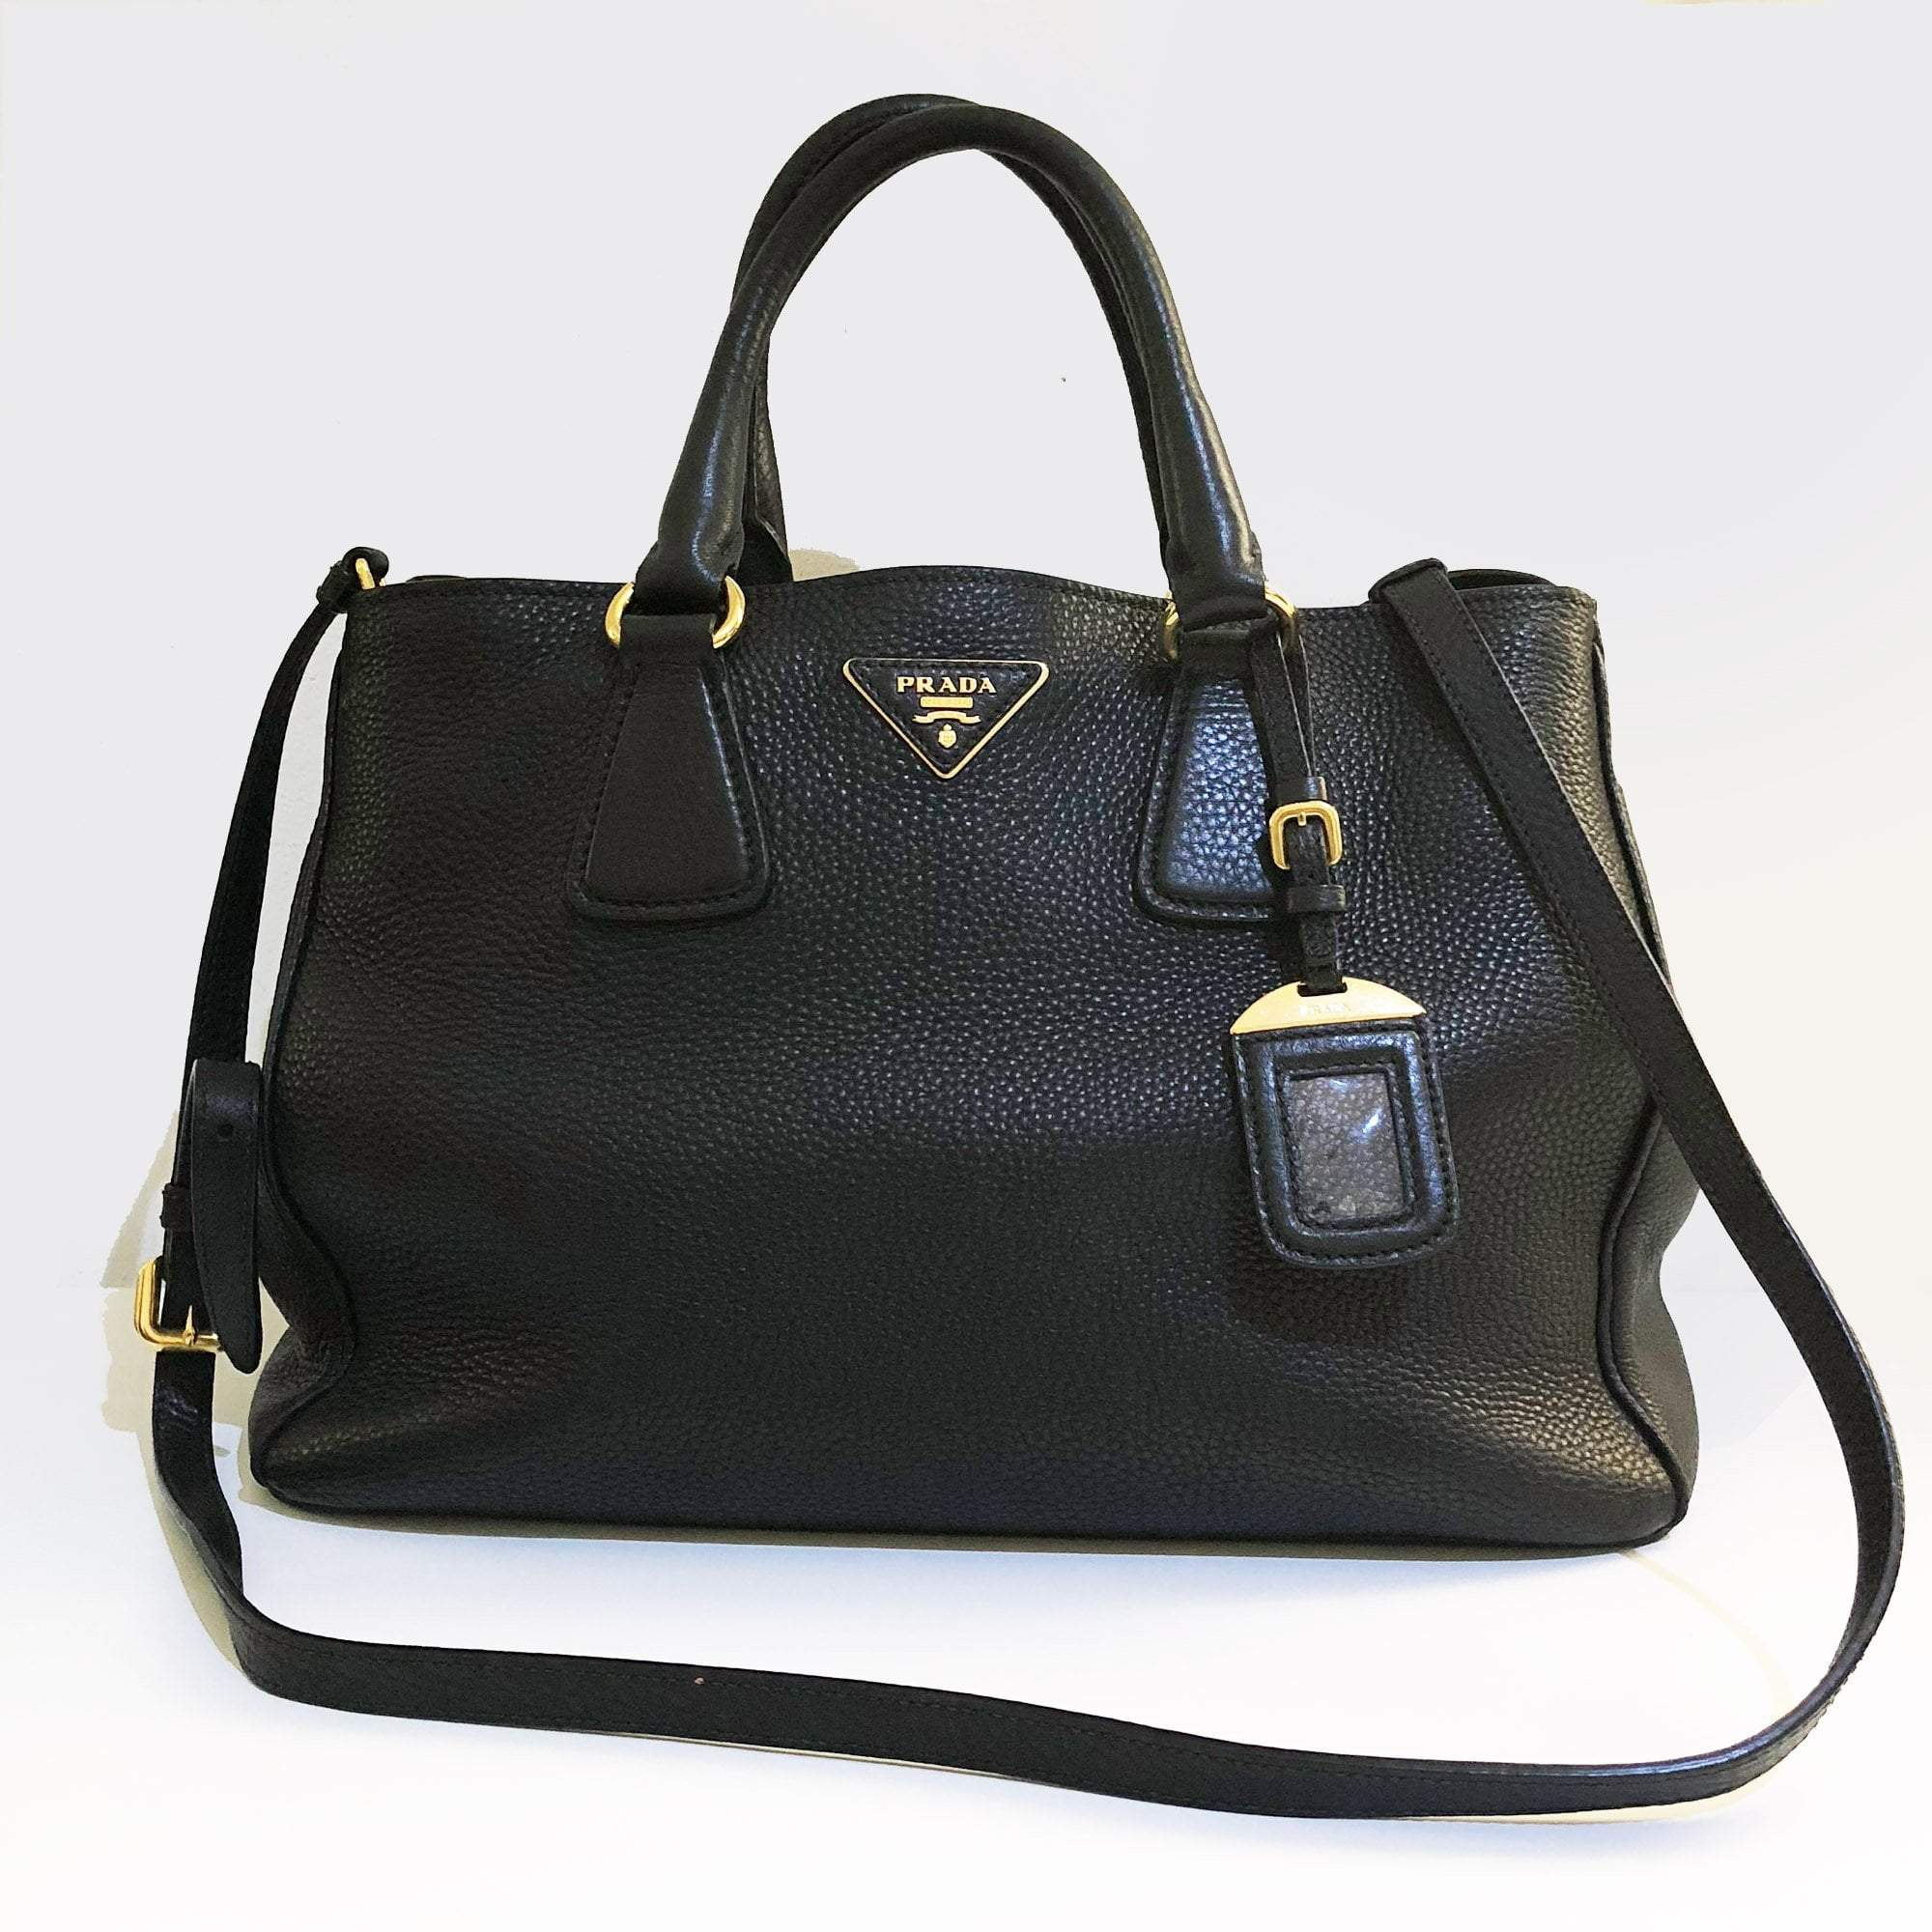 023562464d87 Prada Black Pebbled Leather Vitello Daino Tote Bag – Garderobe